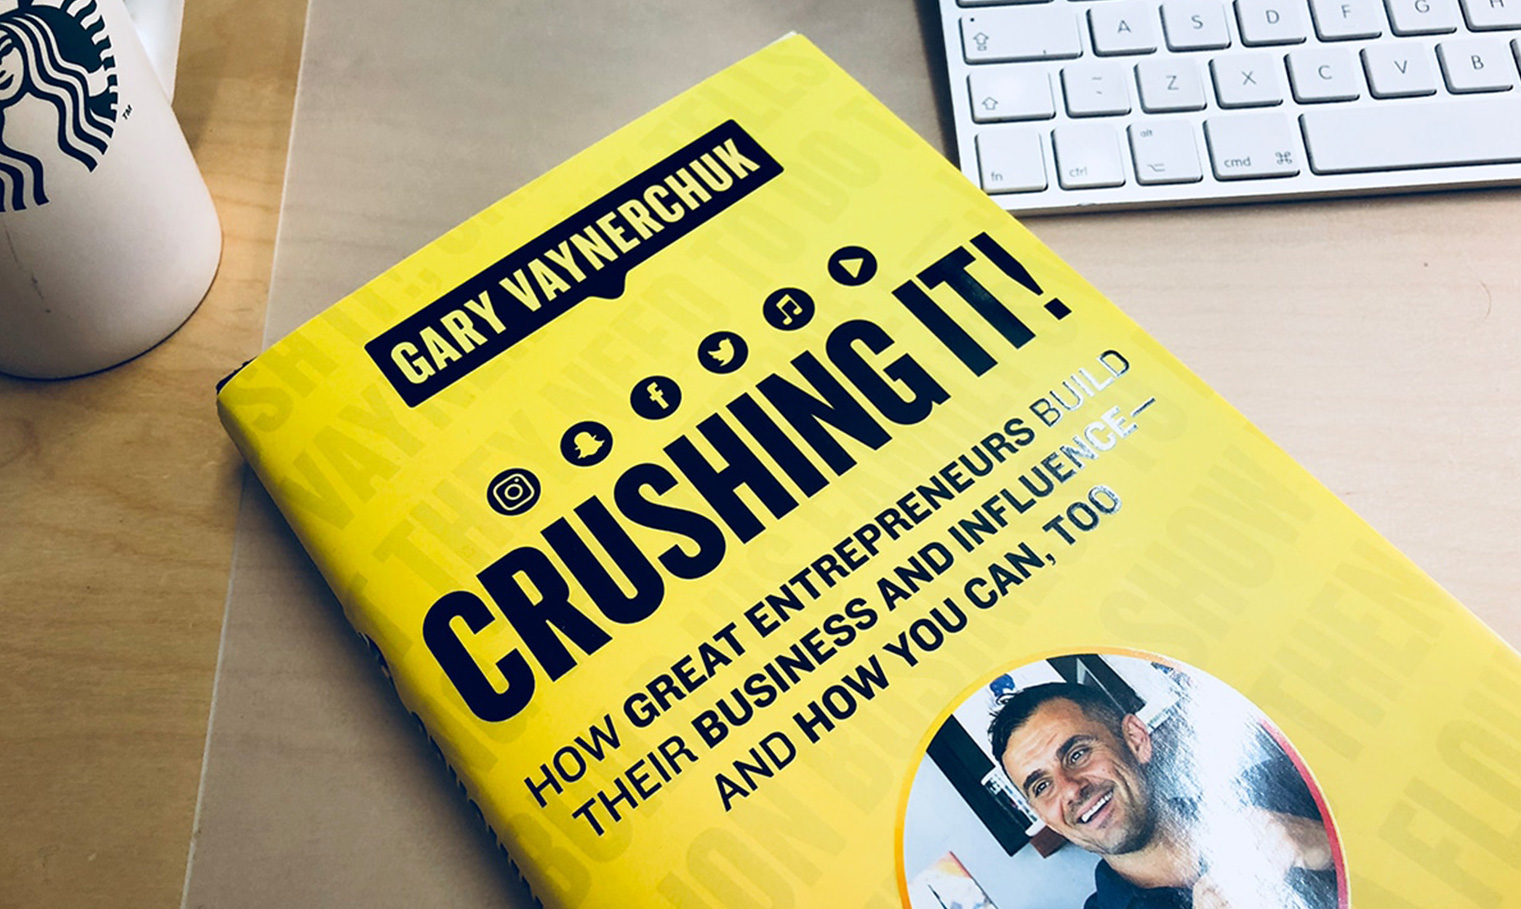 Crushing It!: How Great Entrepreneurs Build Their Business